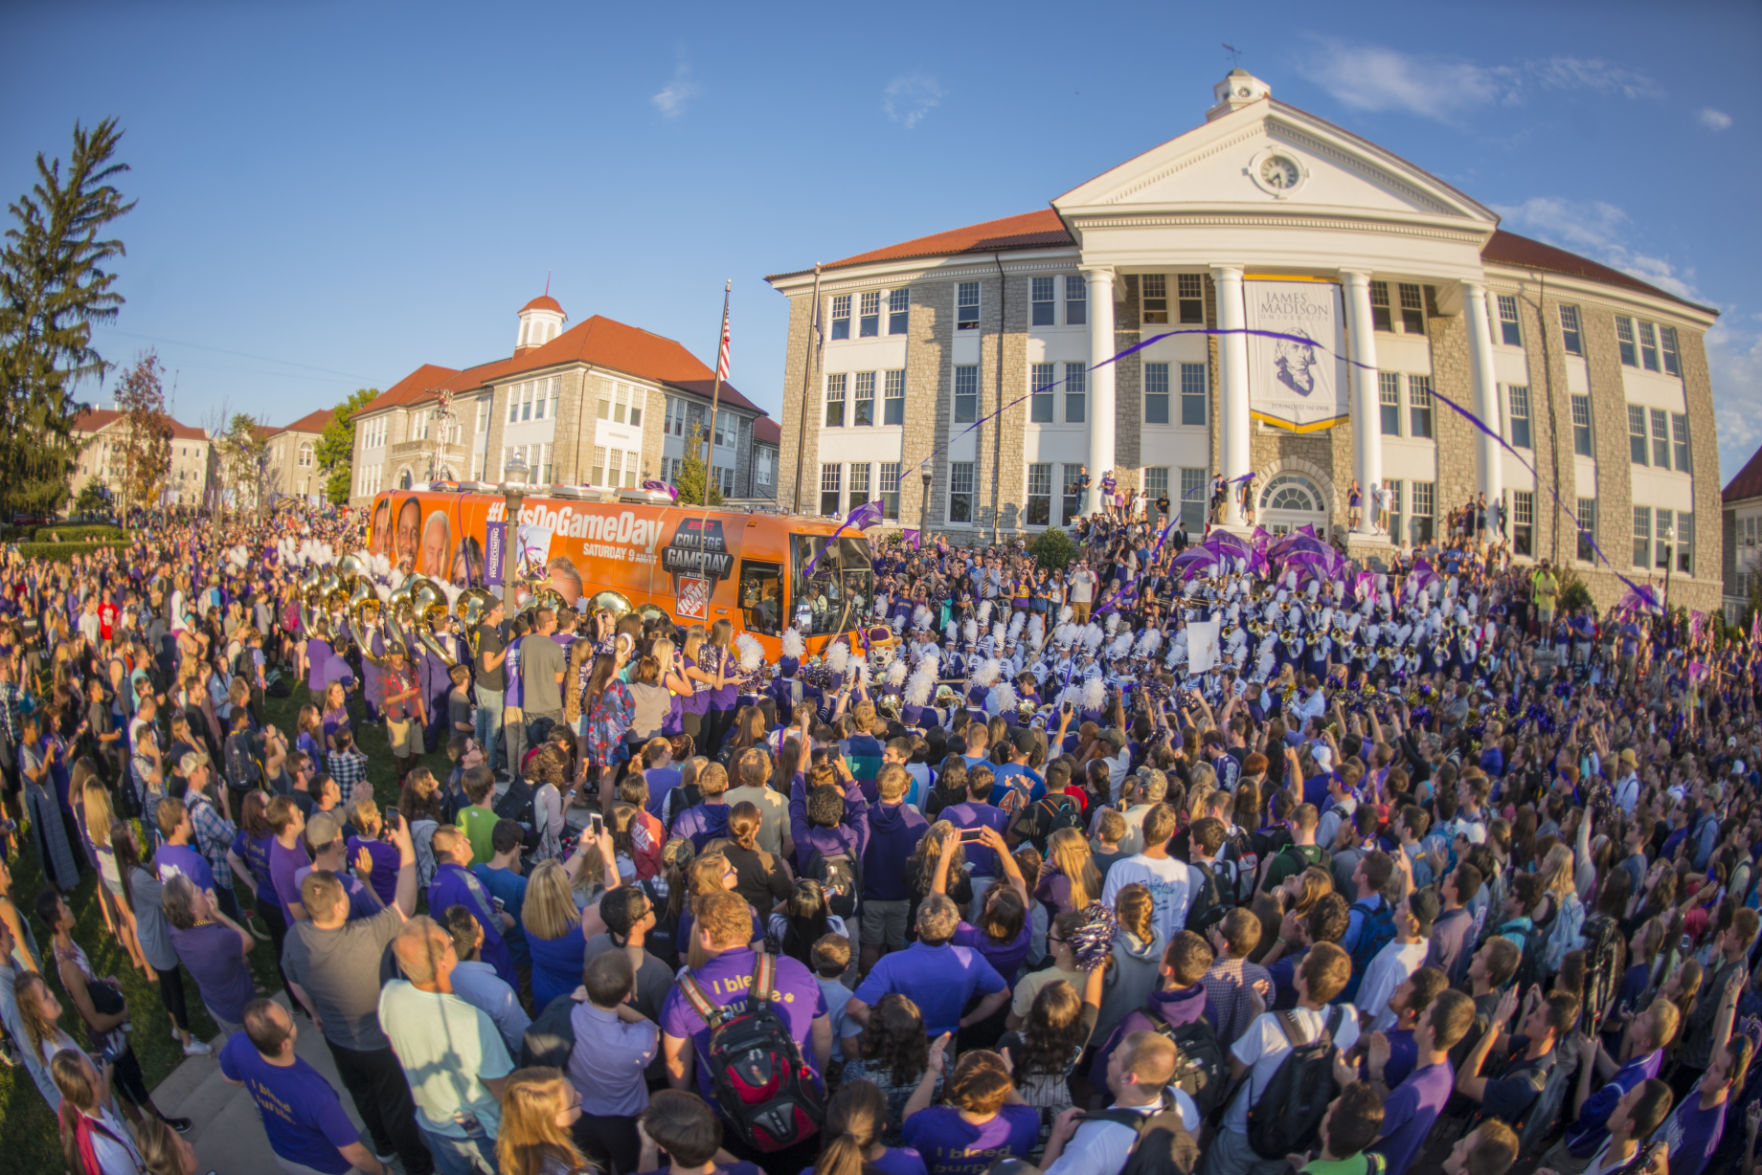 ESPN's 'College Game Day' Football Show Returning to JMU